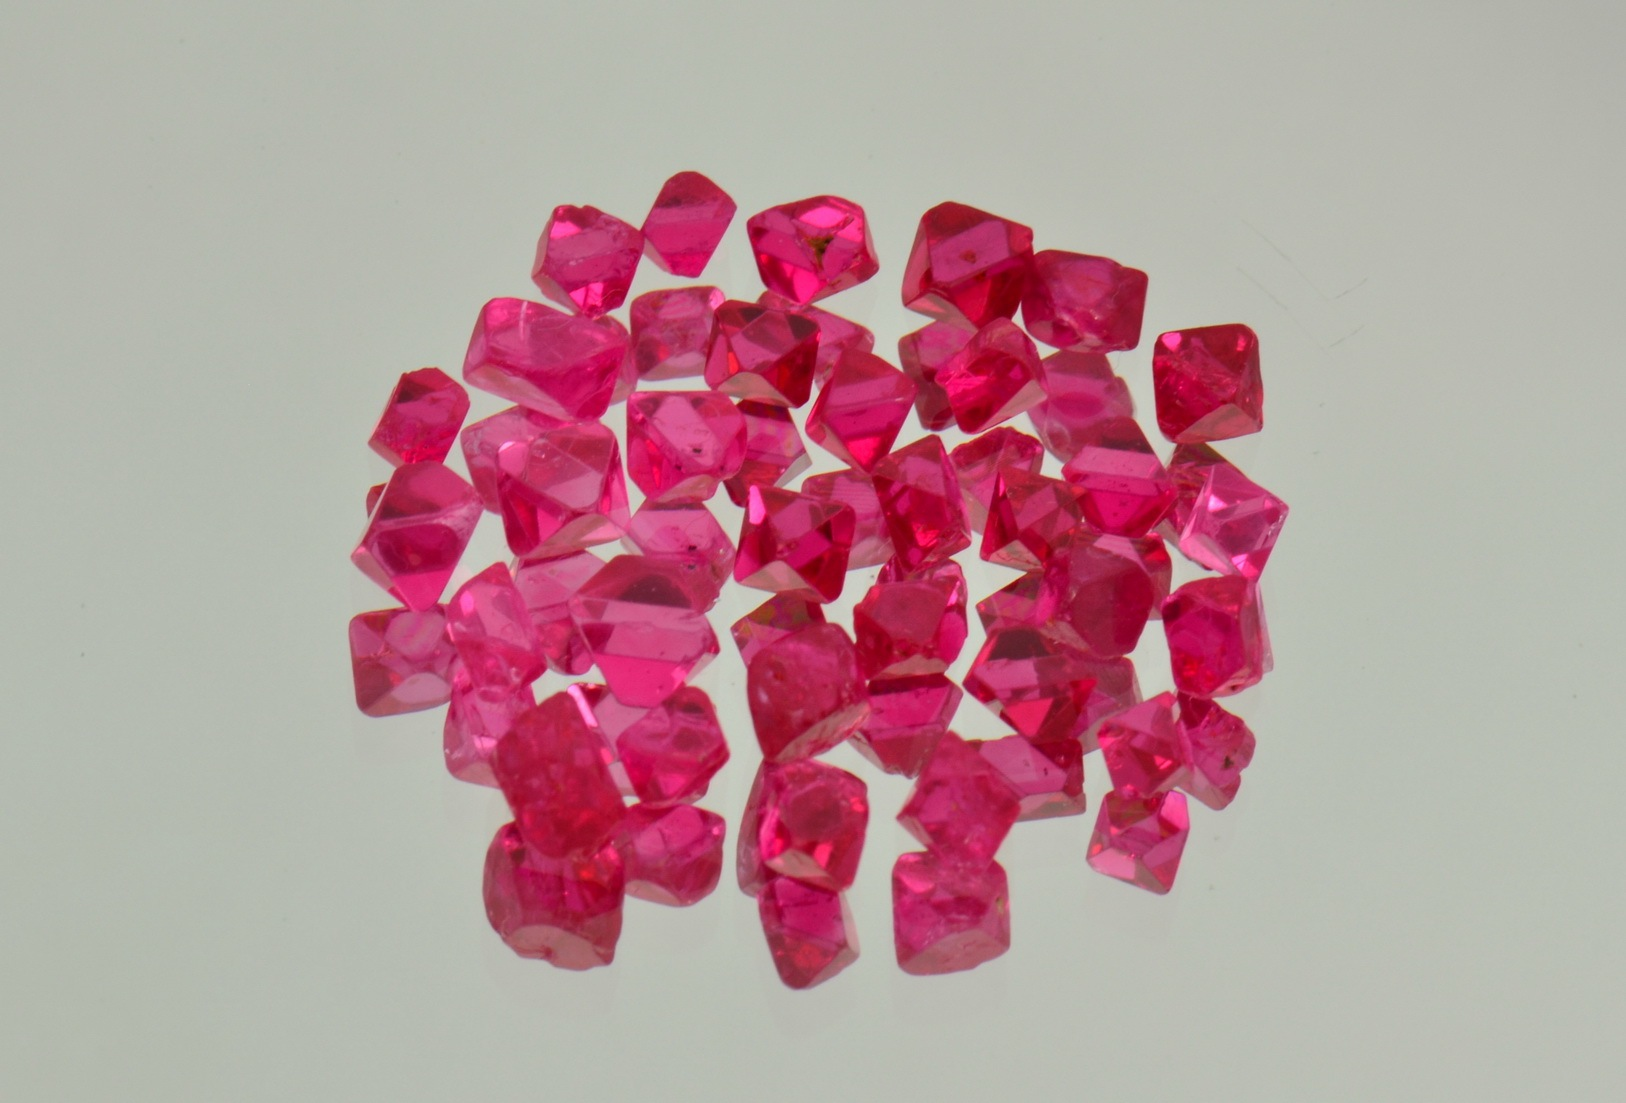 Red Spinel Crystals.jpg